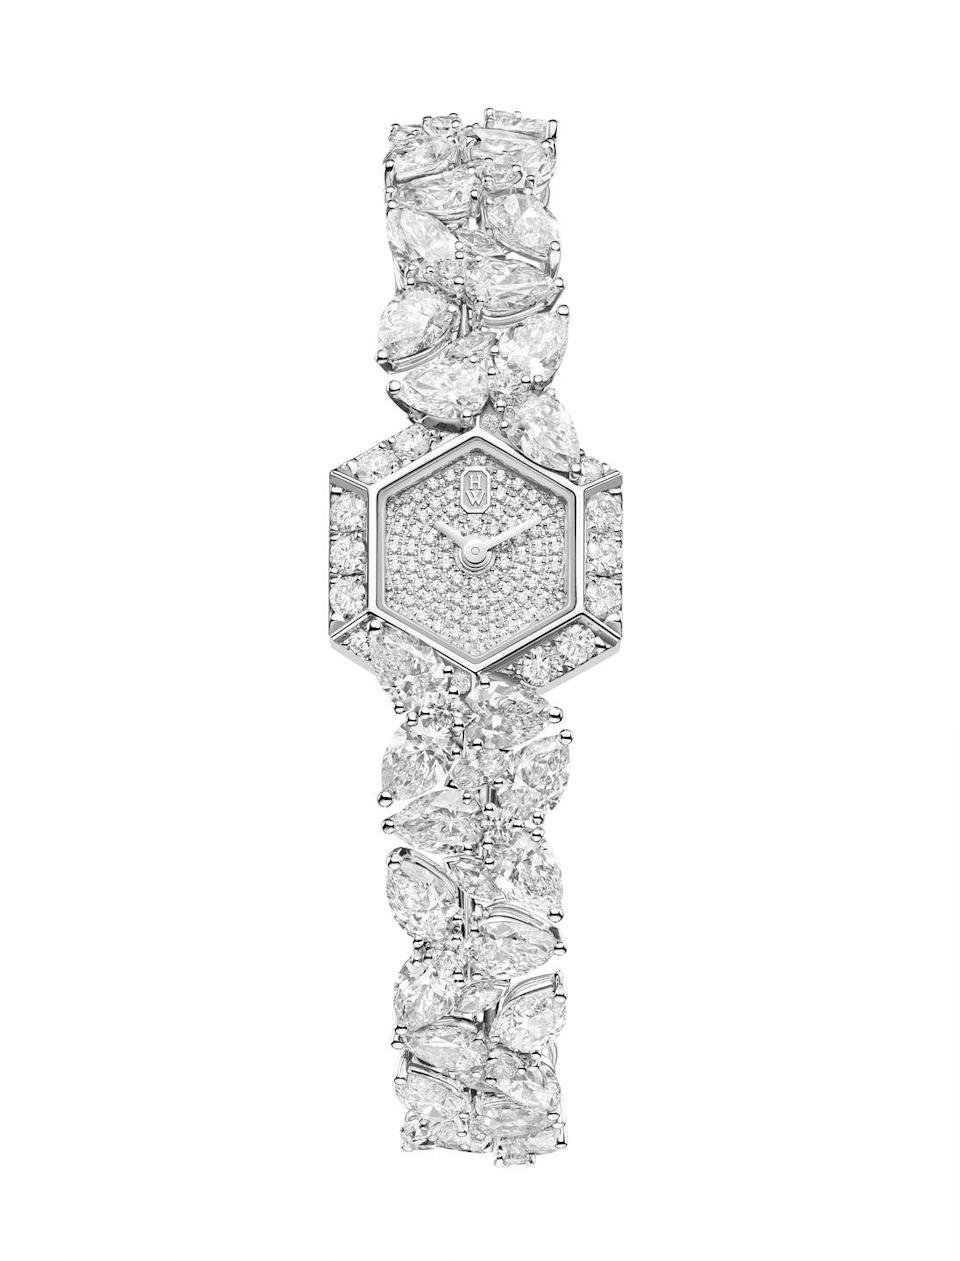 "<p><a class=""link rapid-noclick-resp"" href=""https://www.harrywinston.com/en/products/high-jewelry-timepieces-by-harry-winston/winston-cluster-by-harry-winston-p1/platinum-hjtqhm18pp012"" rel=""nofollow noopener"" target=""_blank"" data-ylk=""slk:SHOP NOW"">SHOP NOW</a></p><p>For the ultimate in precious jewellery watches, Harry Winston has returned to its roots as New York's 'King of Diamonds'. </p><p>The Winston Cluster watch gives a nod to one of the brand's most famous settings, <a href=""https://www.harpersbazaar.com/uk/fashion/jewellery-watches/g36812/10-classic-pieces-of-jewellery-every-woman-should-own/?slide=10"" rel=""nofollow noopener"" target=""_blank"" data-ylk=""slk:the 'Cluster'"" class=""link rapid-noclick-resp"">the 'Cluster'</a>, formulated by the jeweller in the 1940s using pear and marquise-cut diamonds set at varying angles to maximise sparkle. In all, this glamorous timepiece contains 211 diamonds, including 83 brilliant-cut gems in the dial alone. </p><p>Winston Cluster watch, price on request, <a href=""https://www.harrywinston.com/en/products/high-jewelry-timepieces-by-harry-winston/winston-cluster-by-harry-winston-p1/platinum-hjtqhm18pp012"" rel=""nofollow noopener"" target=""_blank"" data-ylk=""slk:Harry Winston"" class=""link rapid-noclick-resp"">Harry Winston</a></p>"